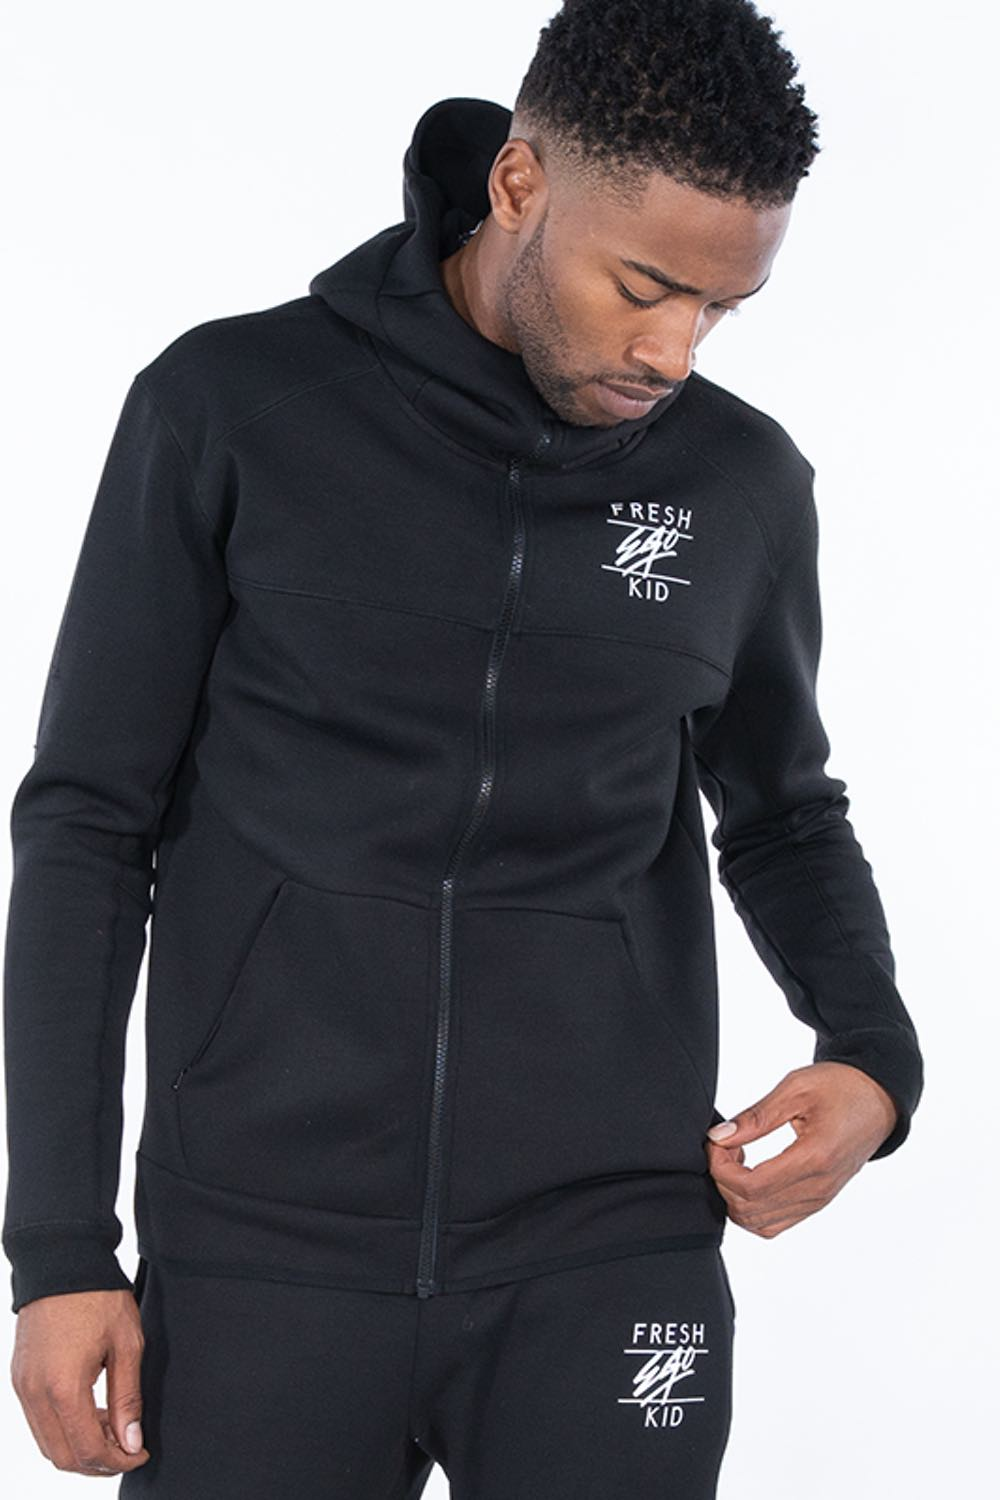 Fresh Ego Kid Scuba Tracksuit - Black - 3